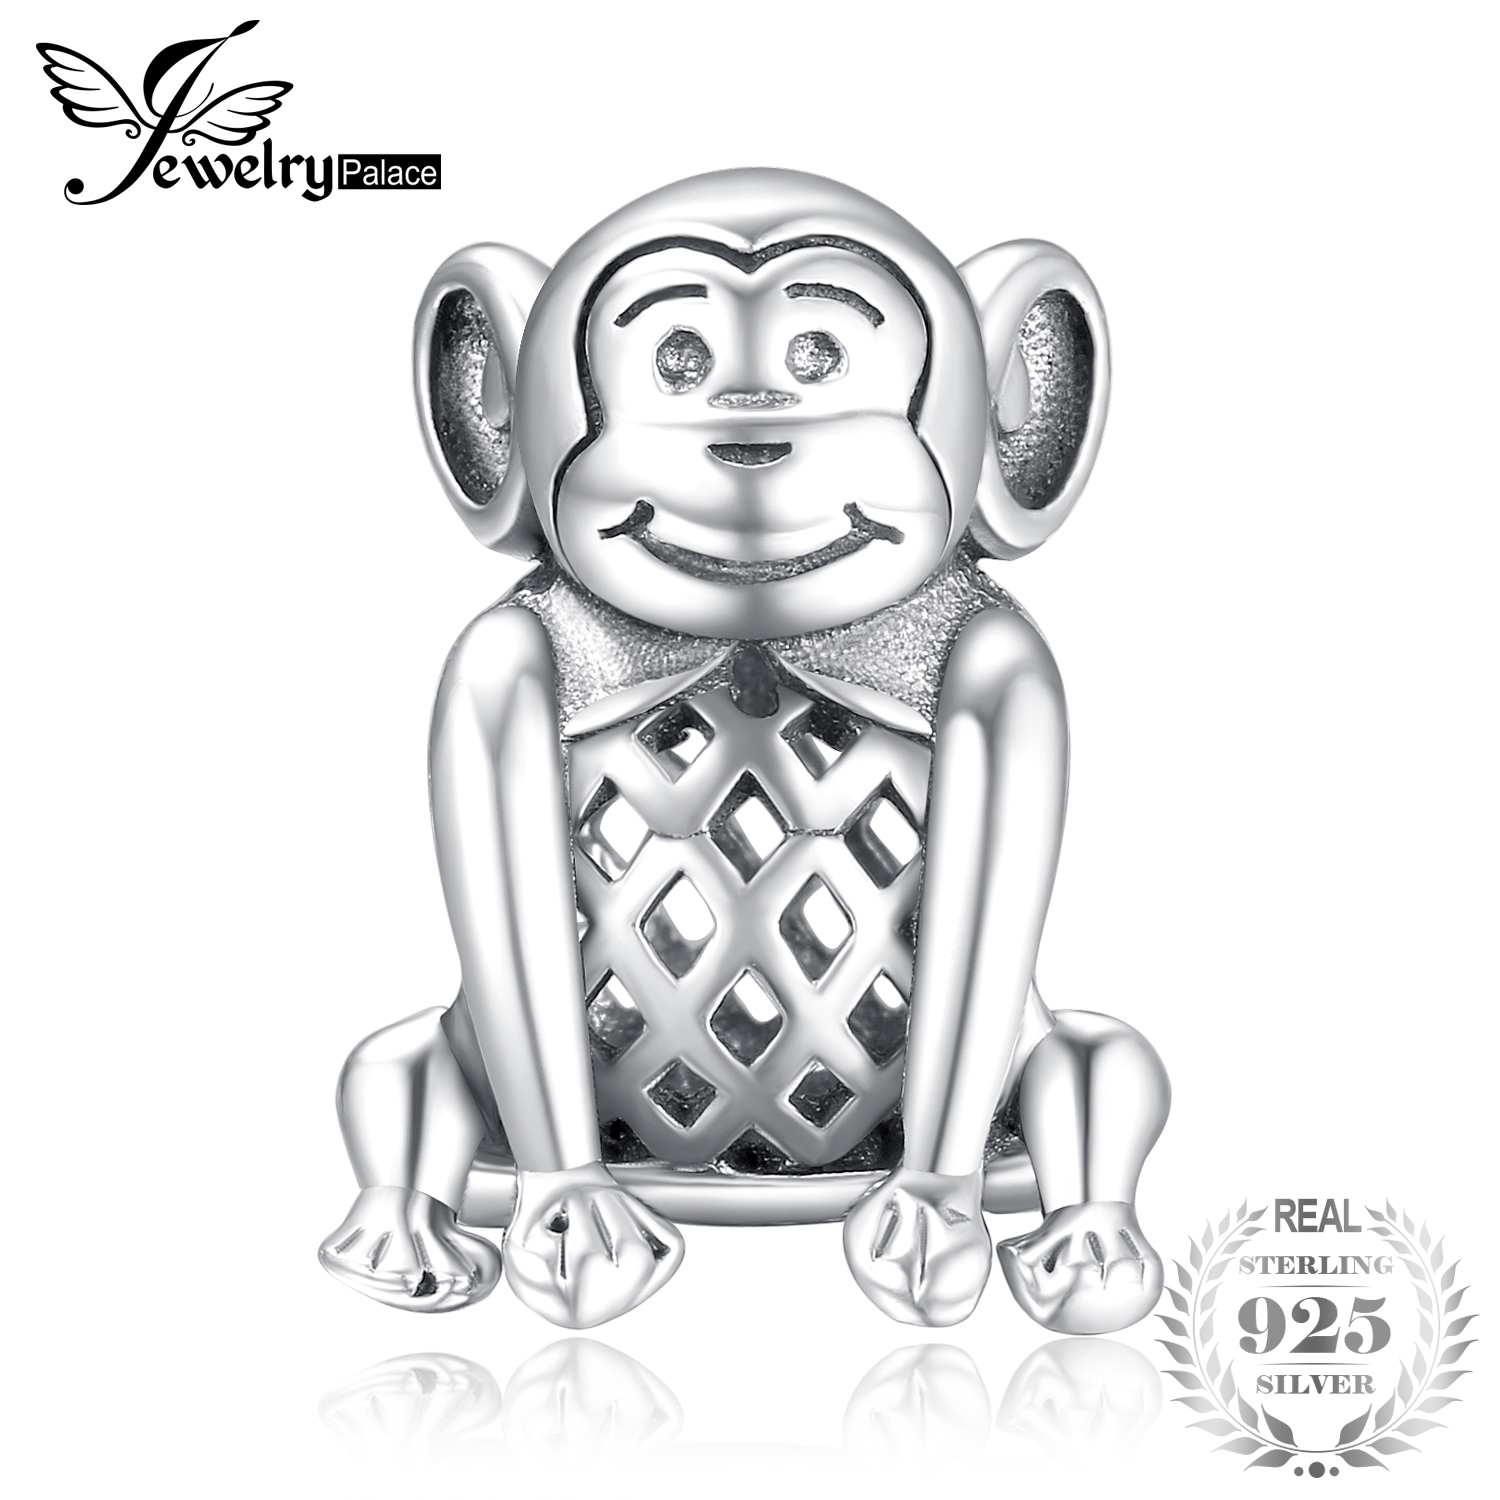 Jewelry & Accessories Beads Cooperative Jewelrypalace 925 Sterling Silver Magic Monkey Bead Charm Fit Bracelets Fashion Diy Bead Charm For Women Bracelets Preventing Hairs From Graying And Helpful To Retain Complexion